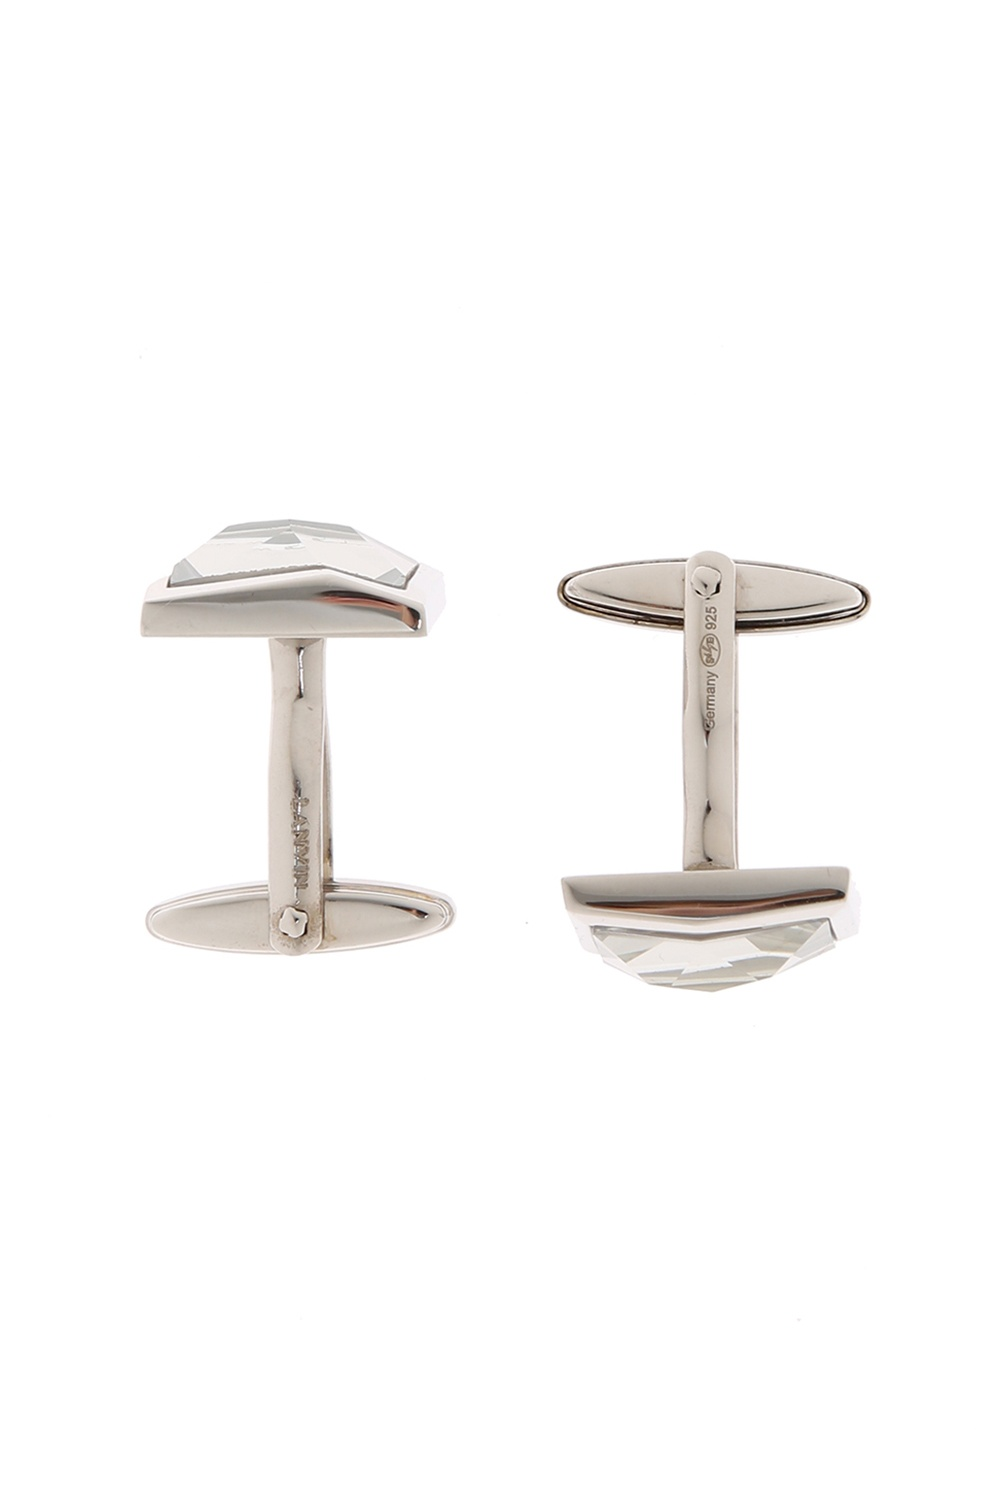 Lanvin Silver cuff links with stone